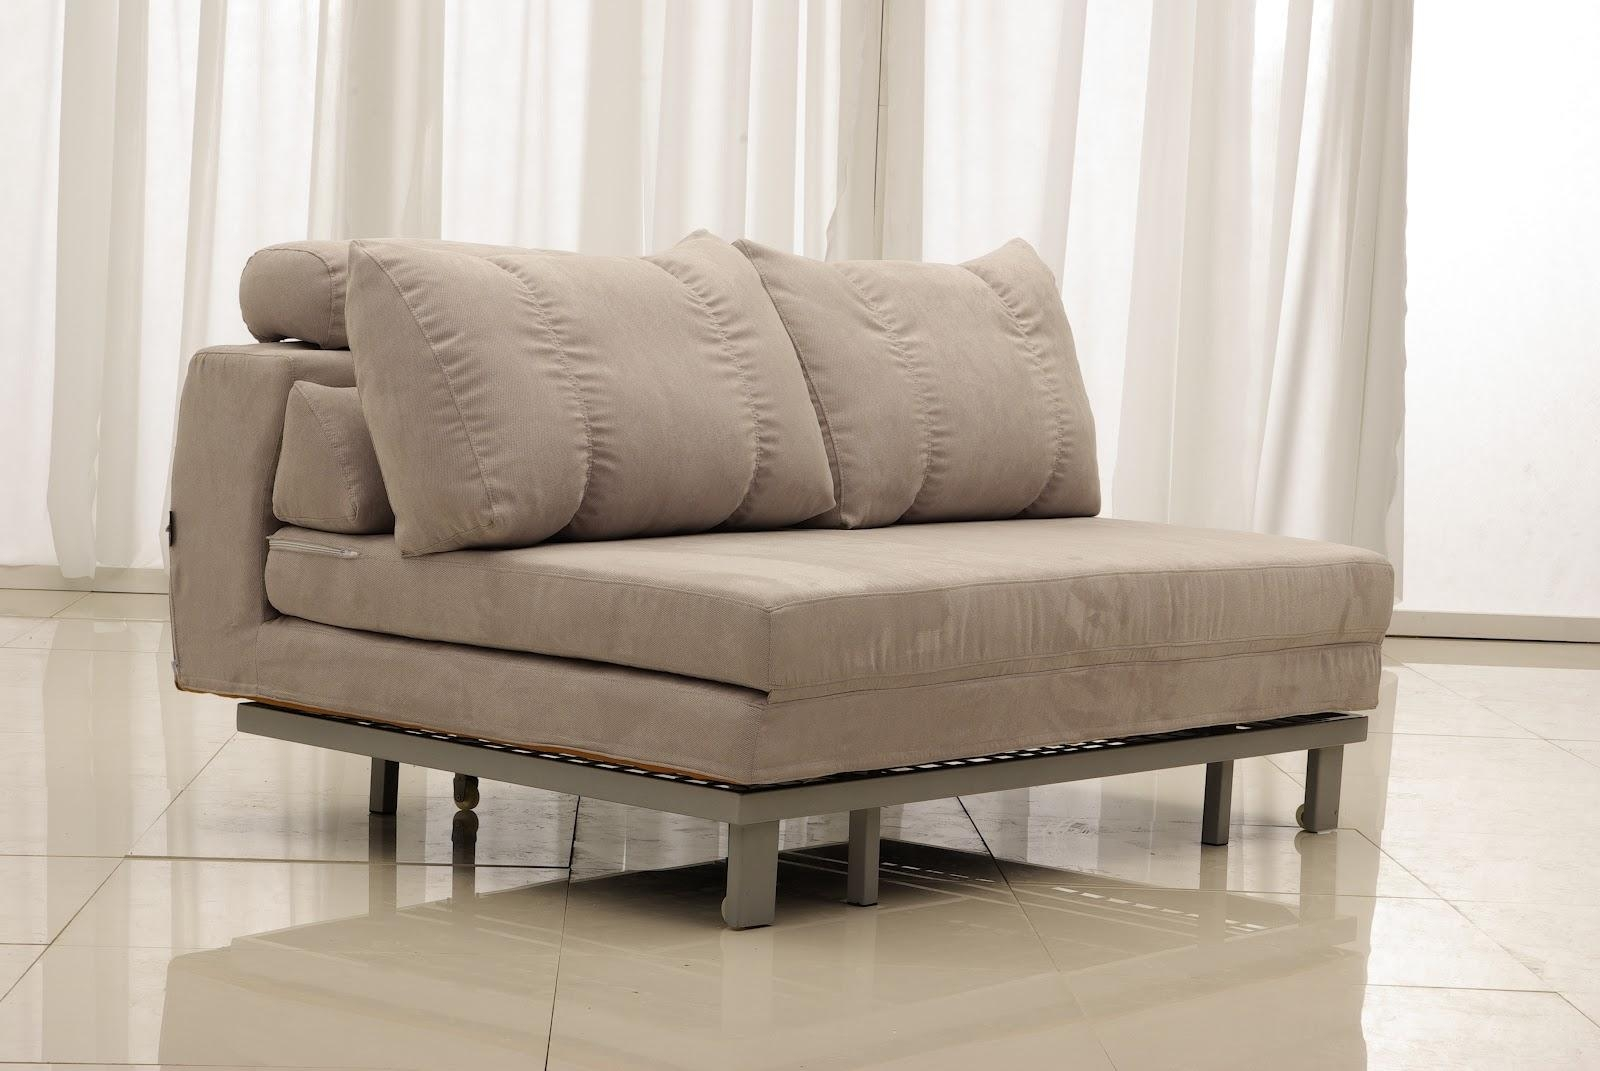 Comfortable Sofa Beds Gallery Of Art Most Comfortable Sofa Bed With Most Comfortable Sofabed (View 3 of 22)